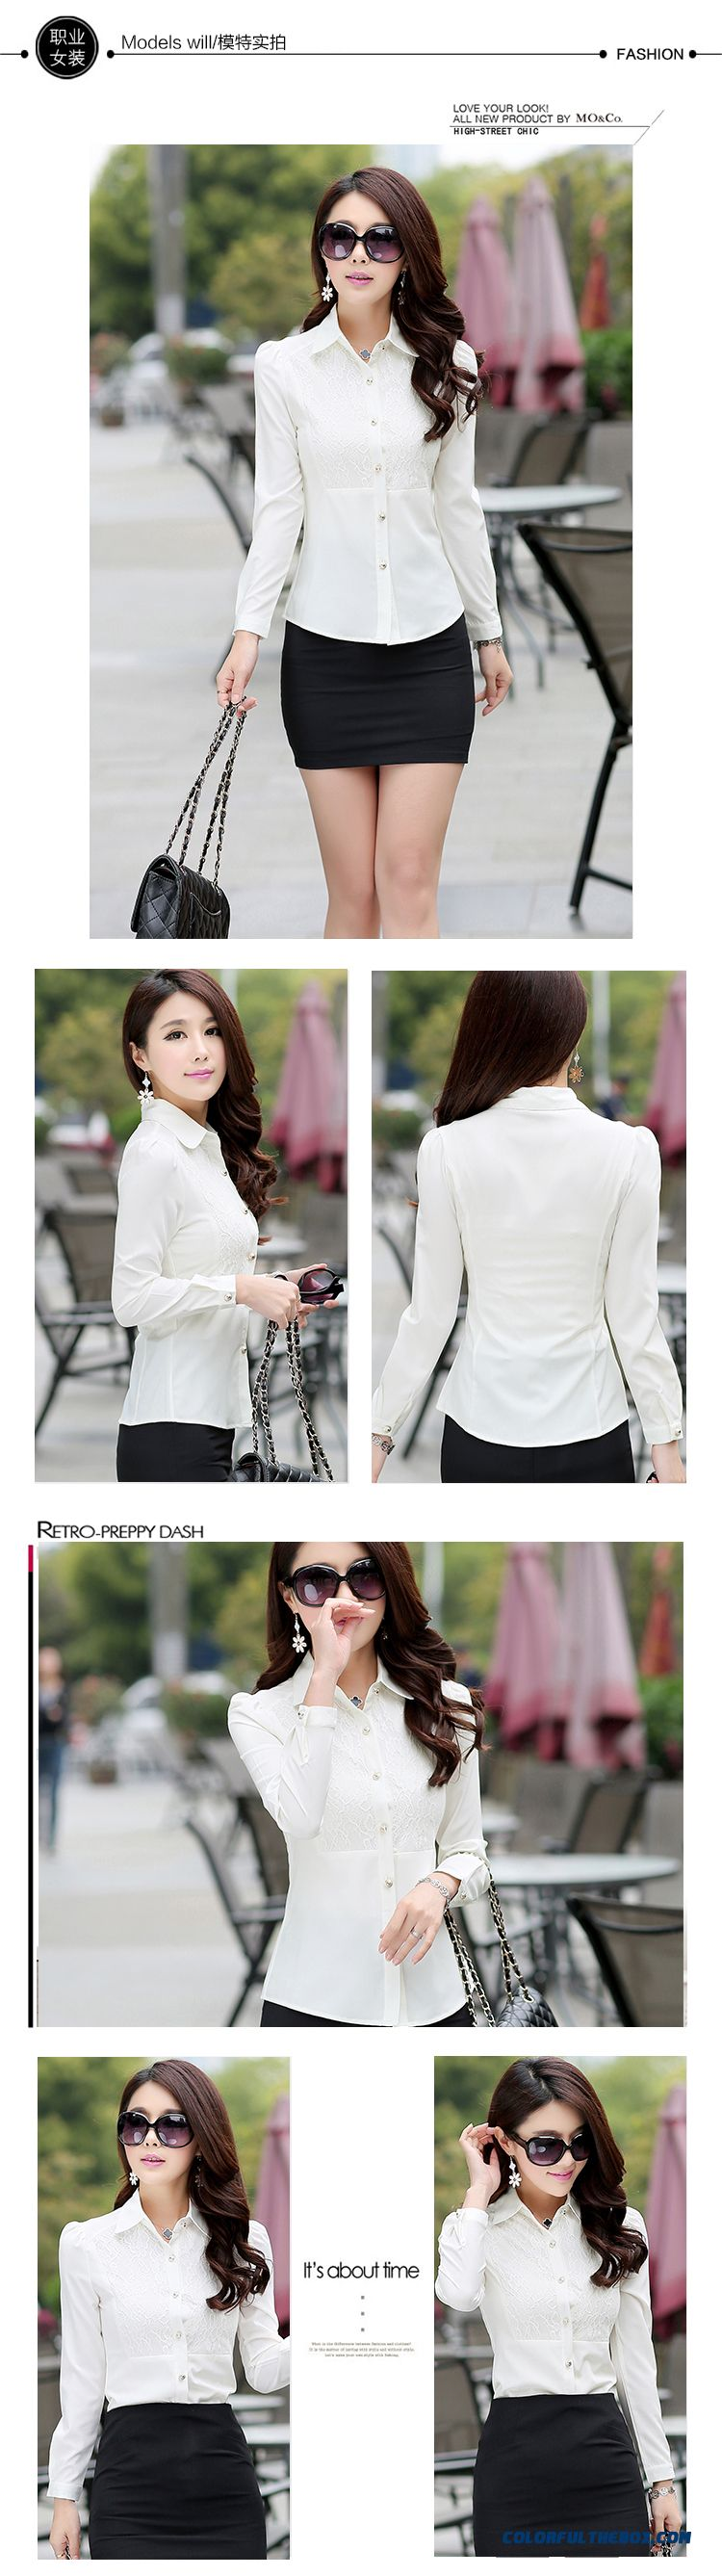 Lady Women Occupational Ol Temperament Stylish Shirts Tooling Casual Shirt Bottoming Shirt Europe Fashion Srtyle Design - detail images